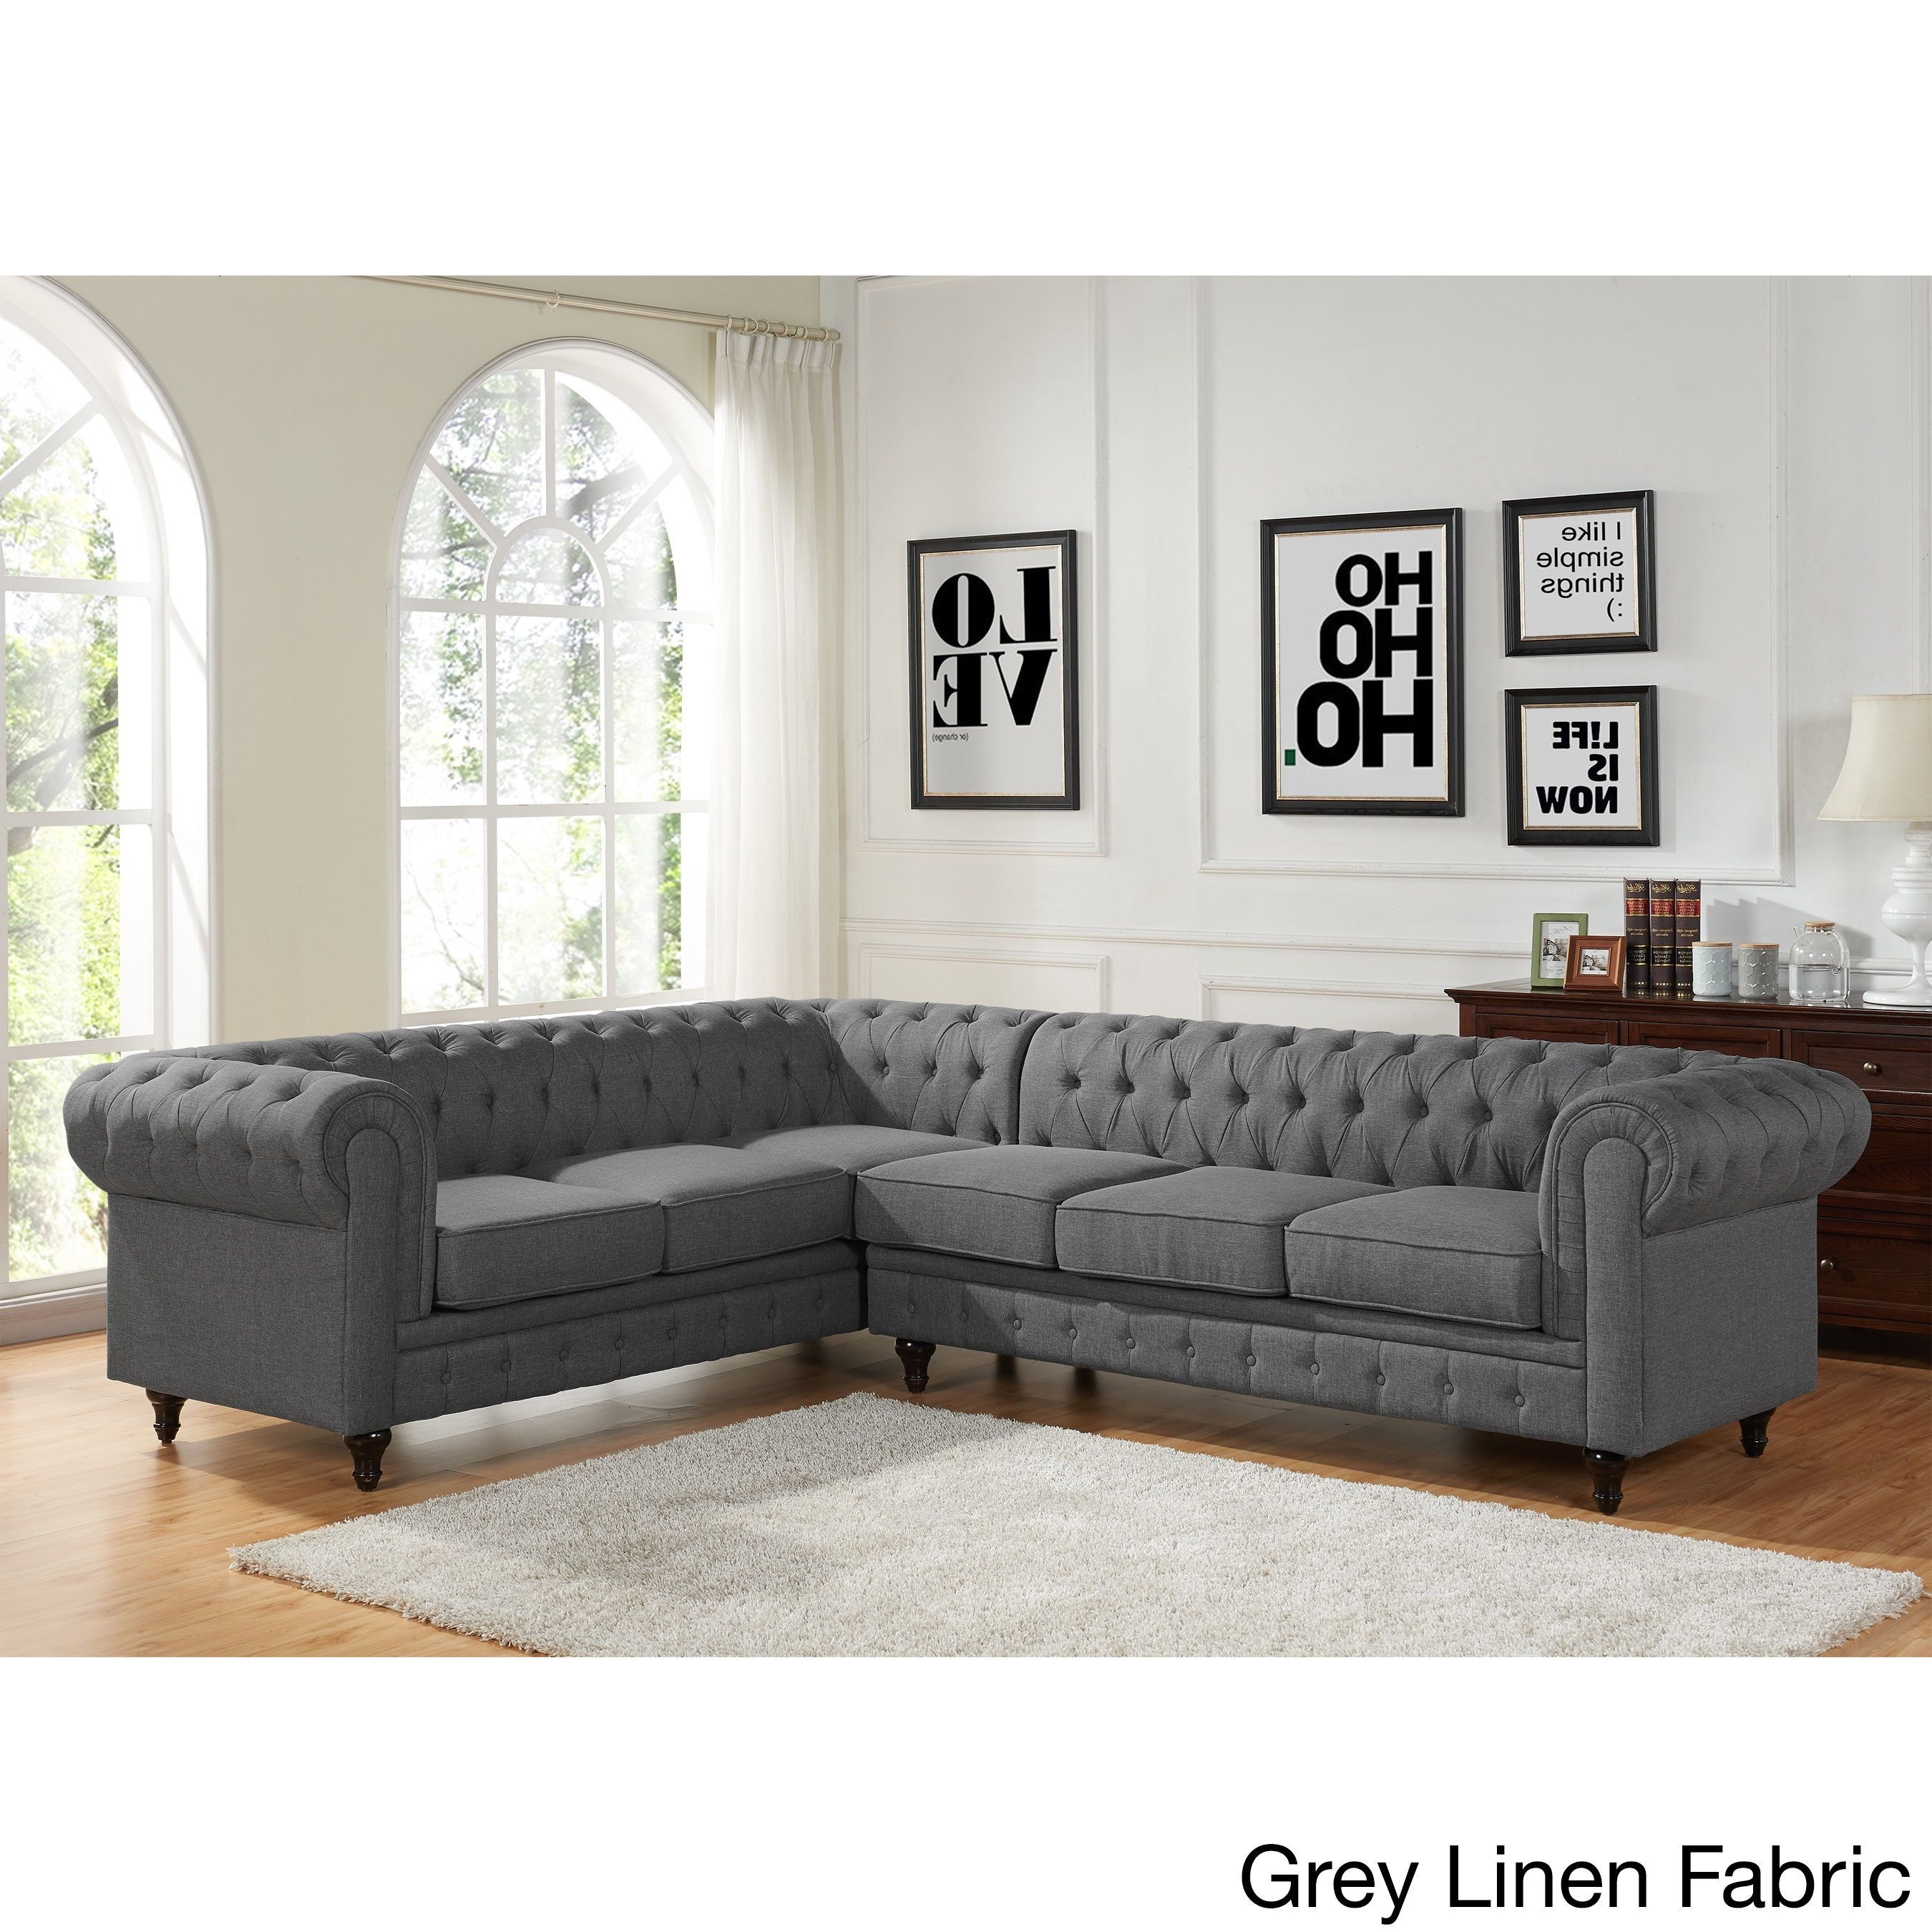 modern right with facing item signature sofa design products chamberly alloy sectional piece by chaise ashley